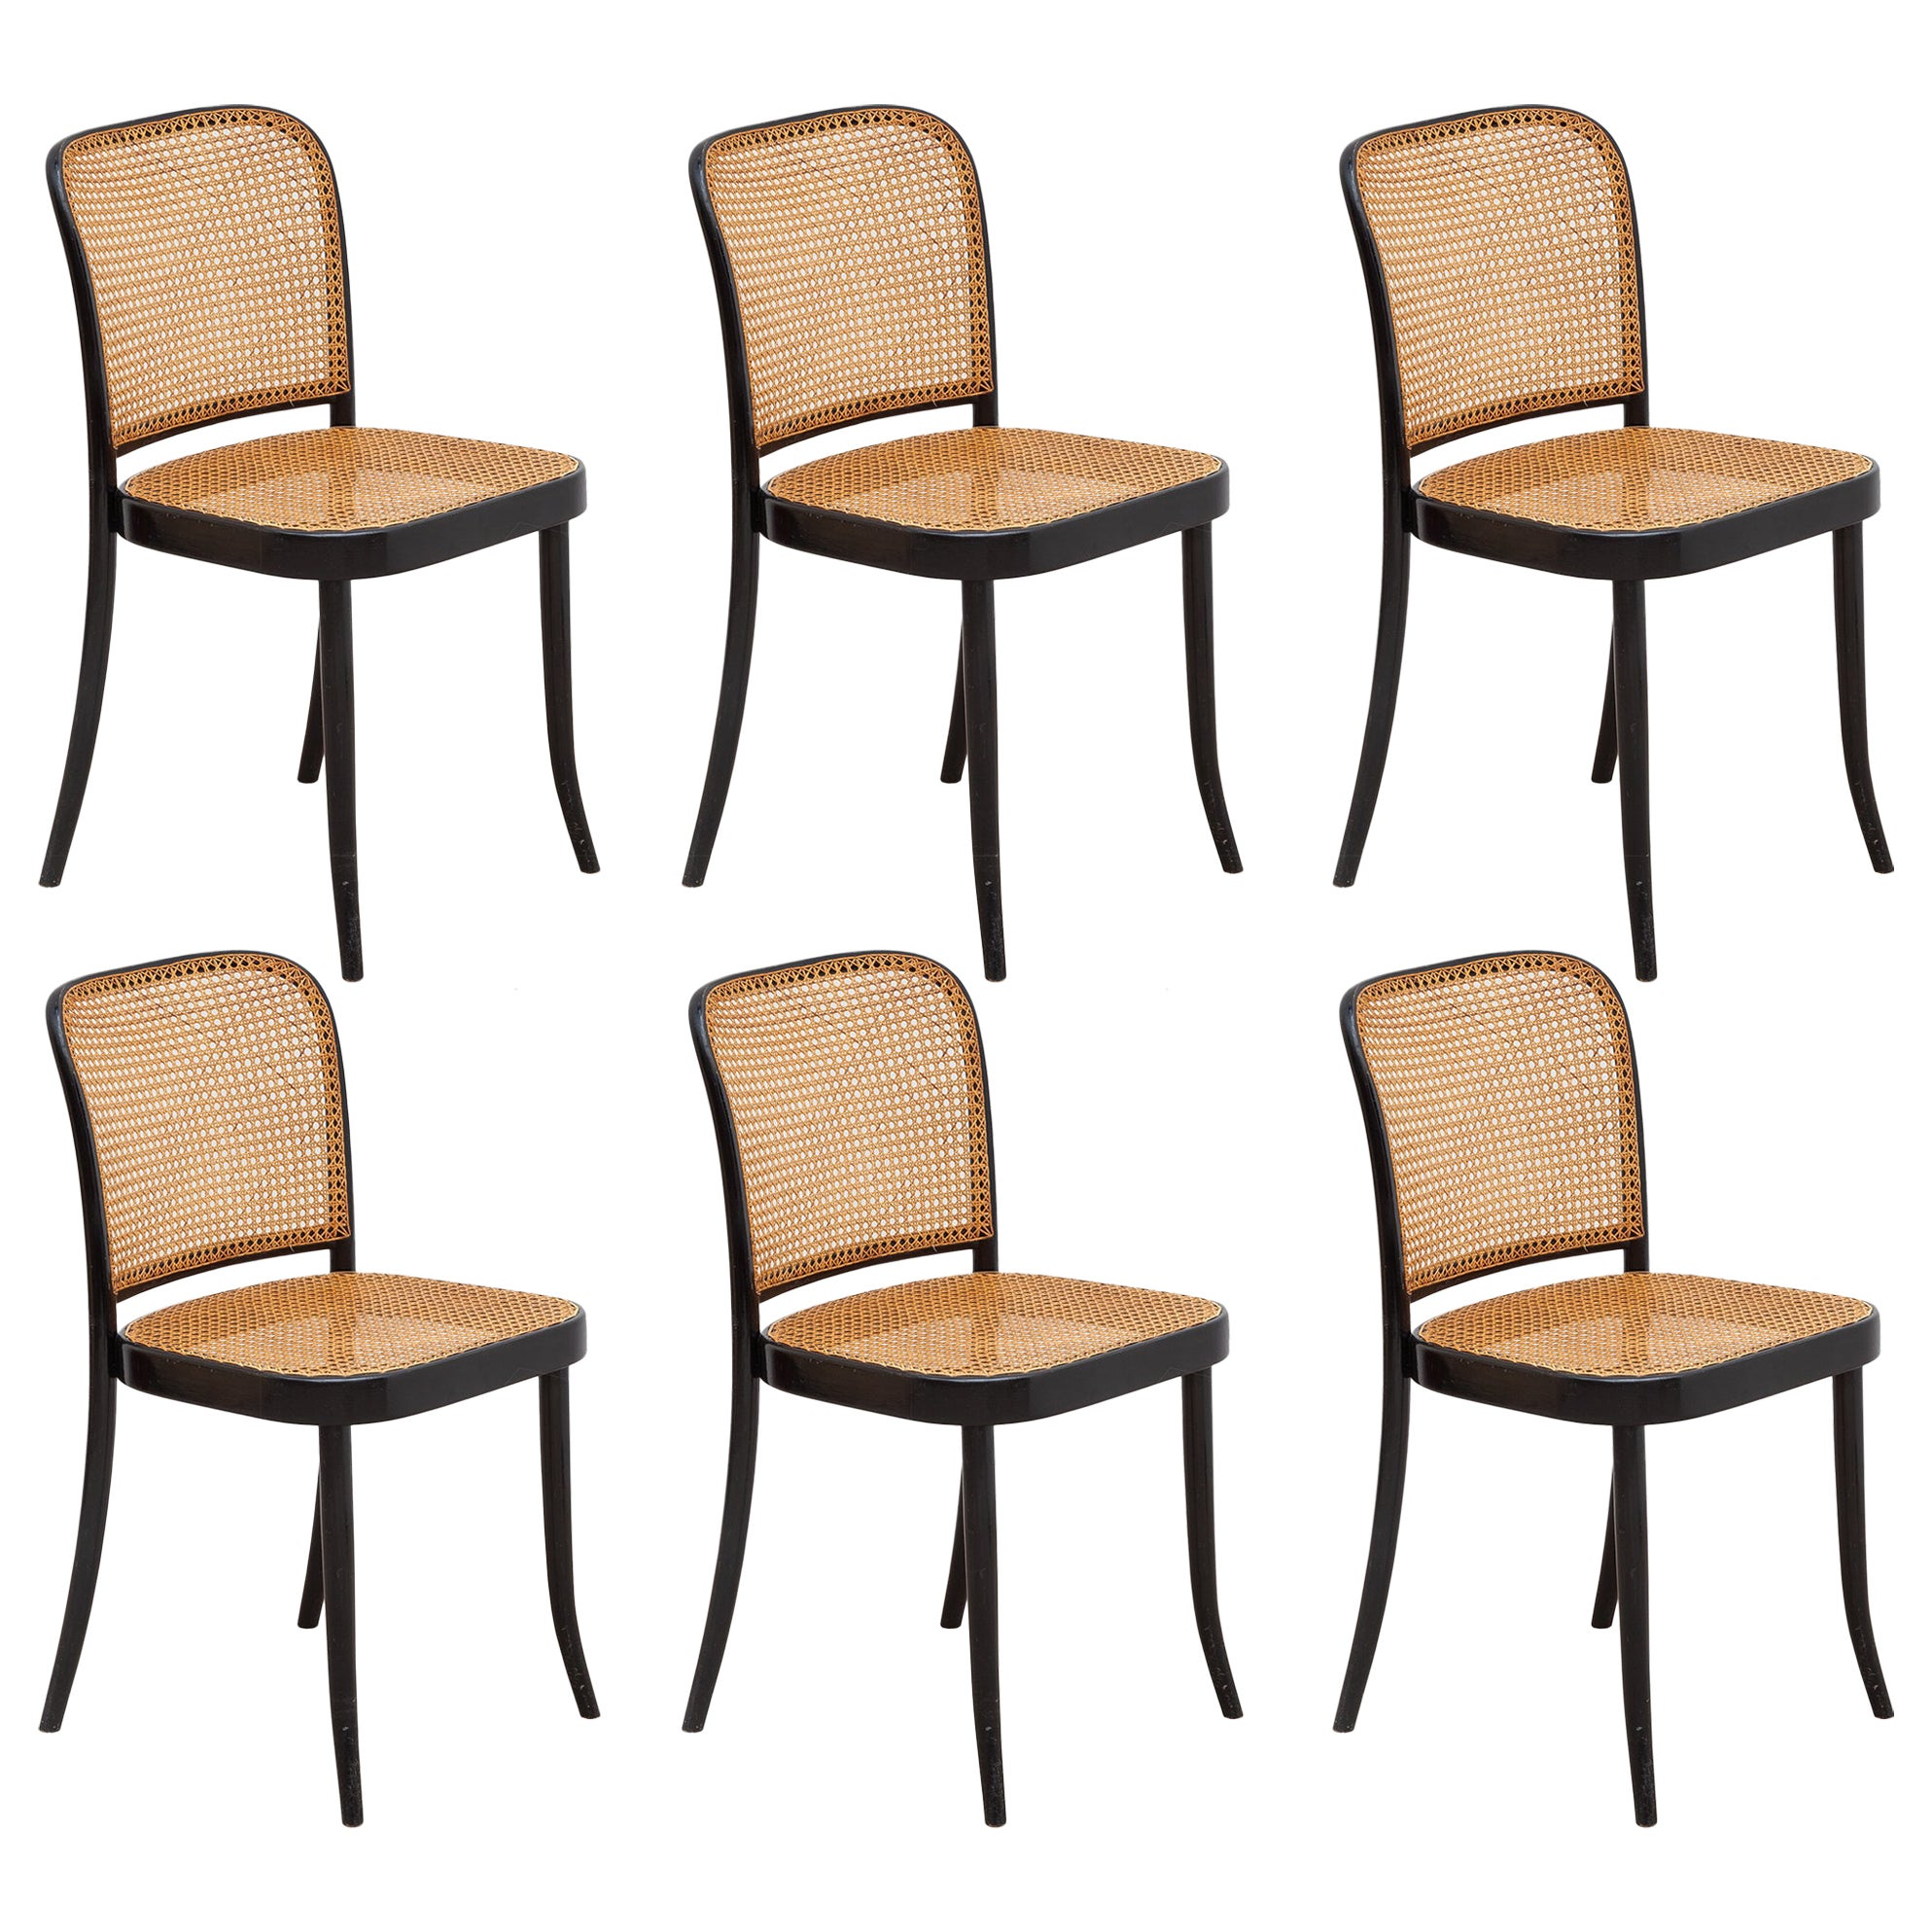 Set of Six Bentwood Cane Dining Chairs Designed by Josef Hoffman for Thonet